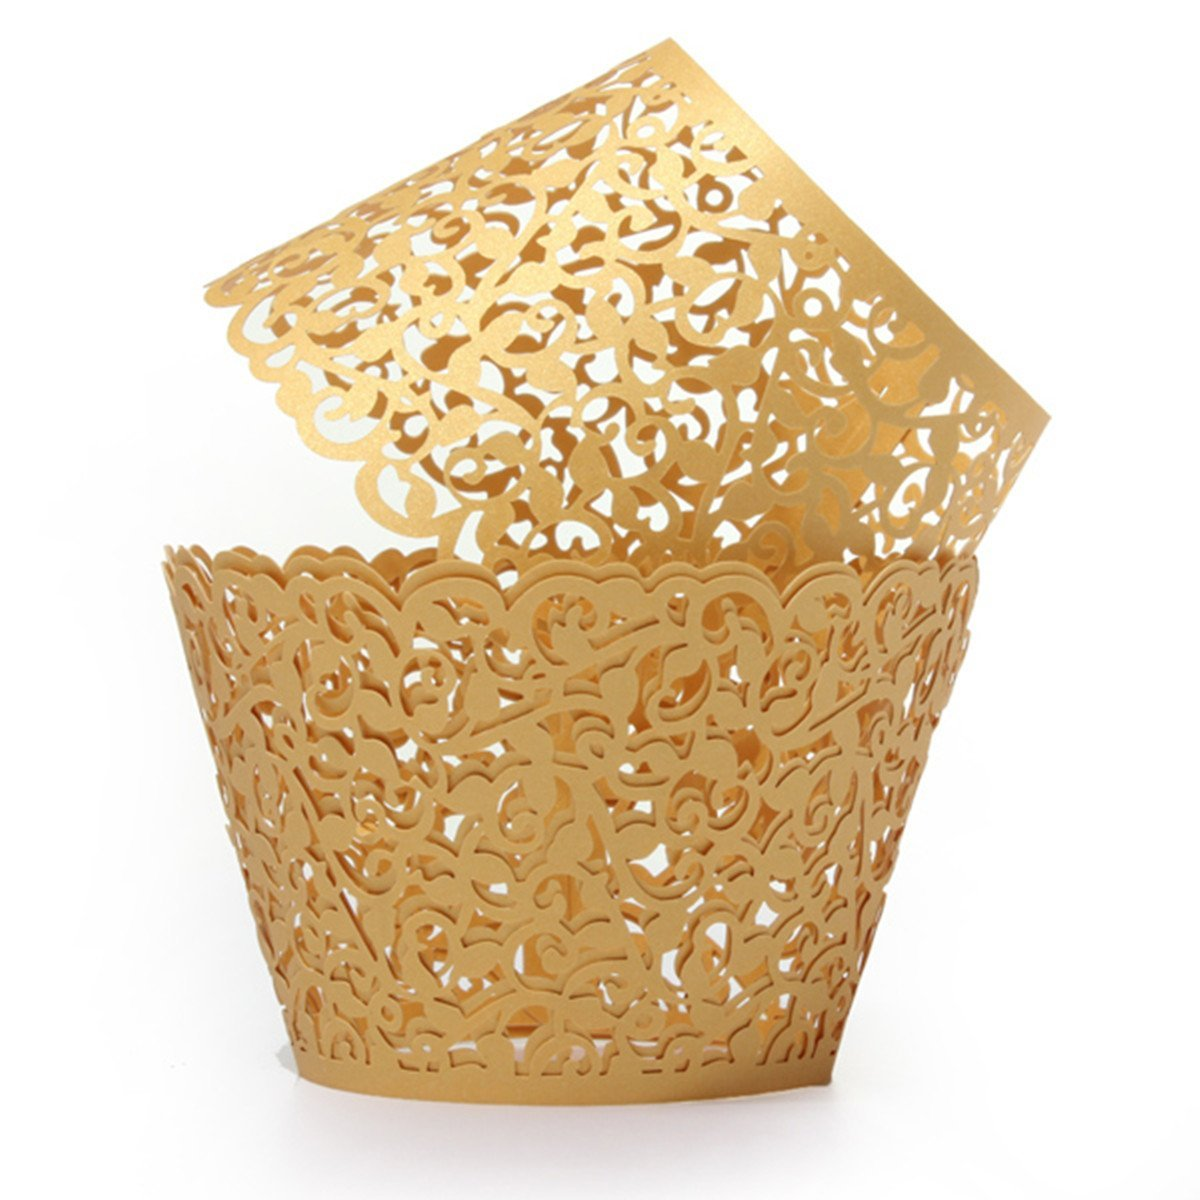 SODIAL(R)12X Filigree Vine Cake Cupcake Wrappers Wraps Cases Wedding Birthday Decorations Gold